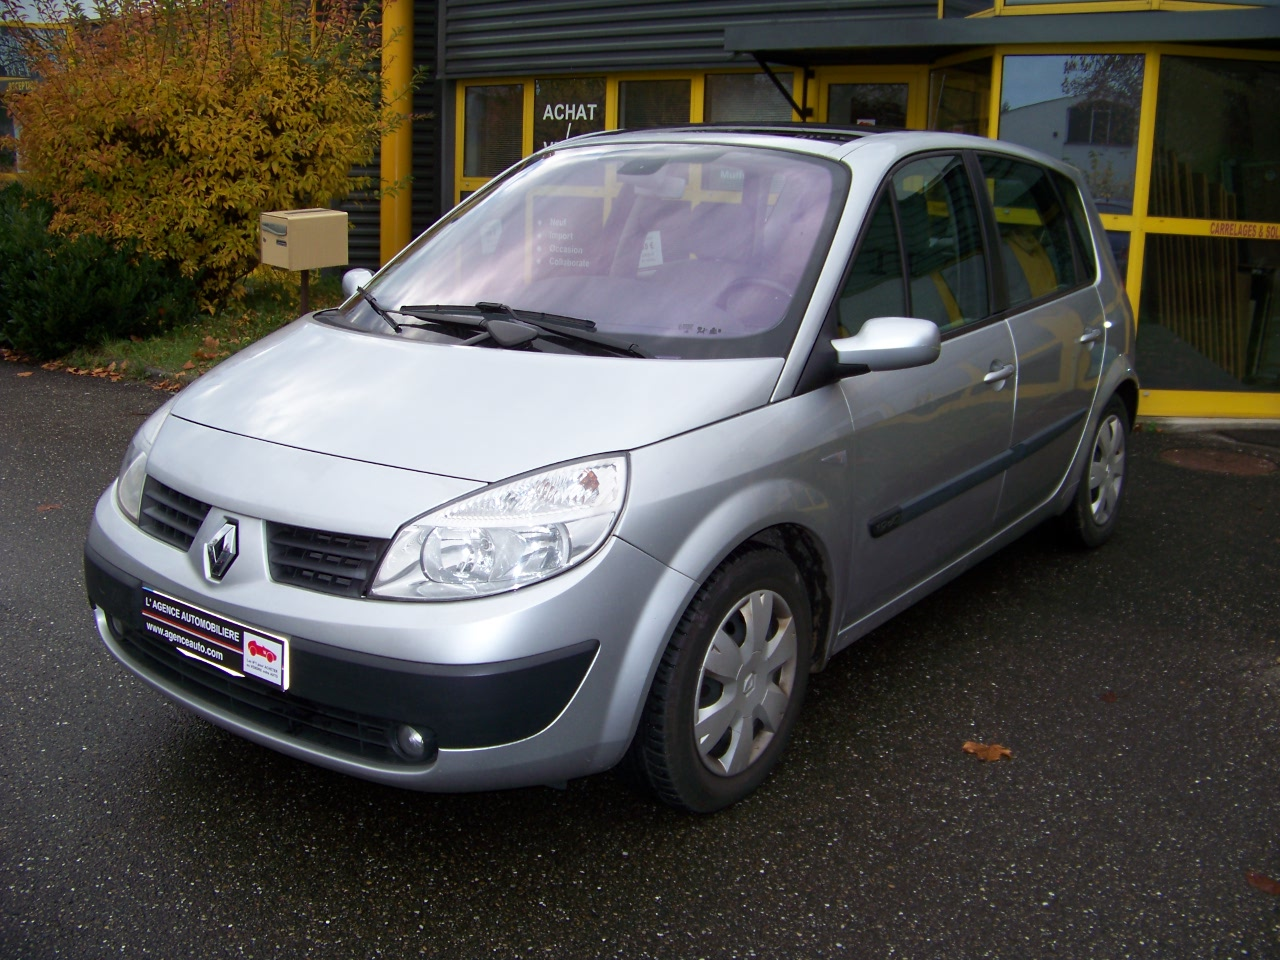 Voiture Occasion Bayonne Petit Prix Achat Voiture Renault Scenic Occasion Petit Prix